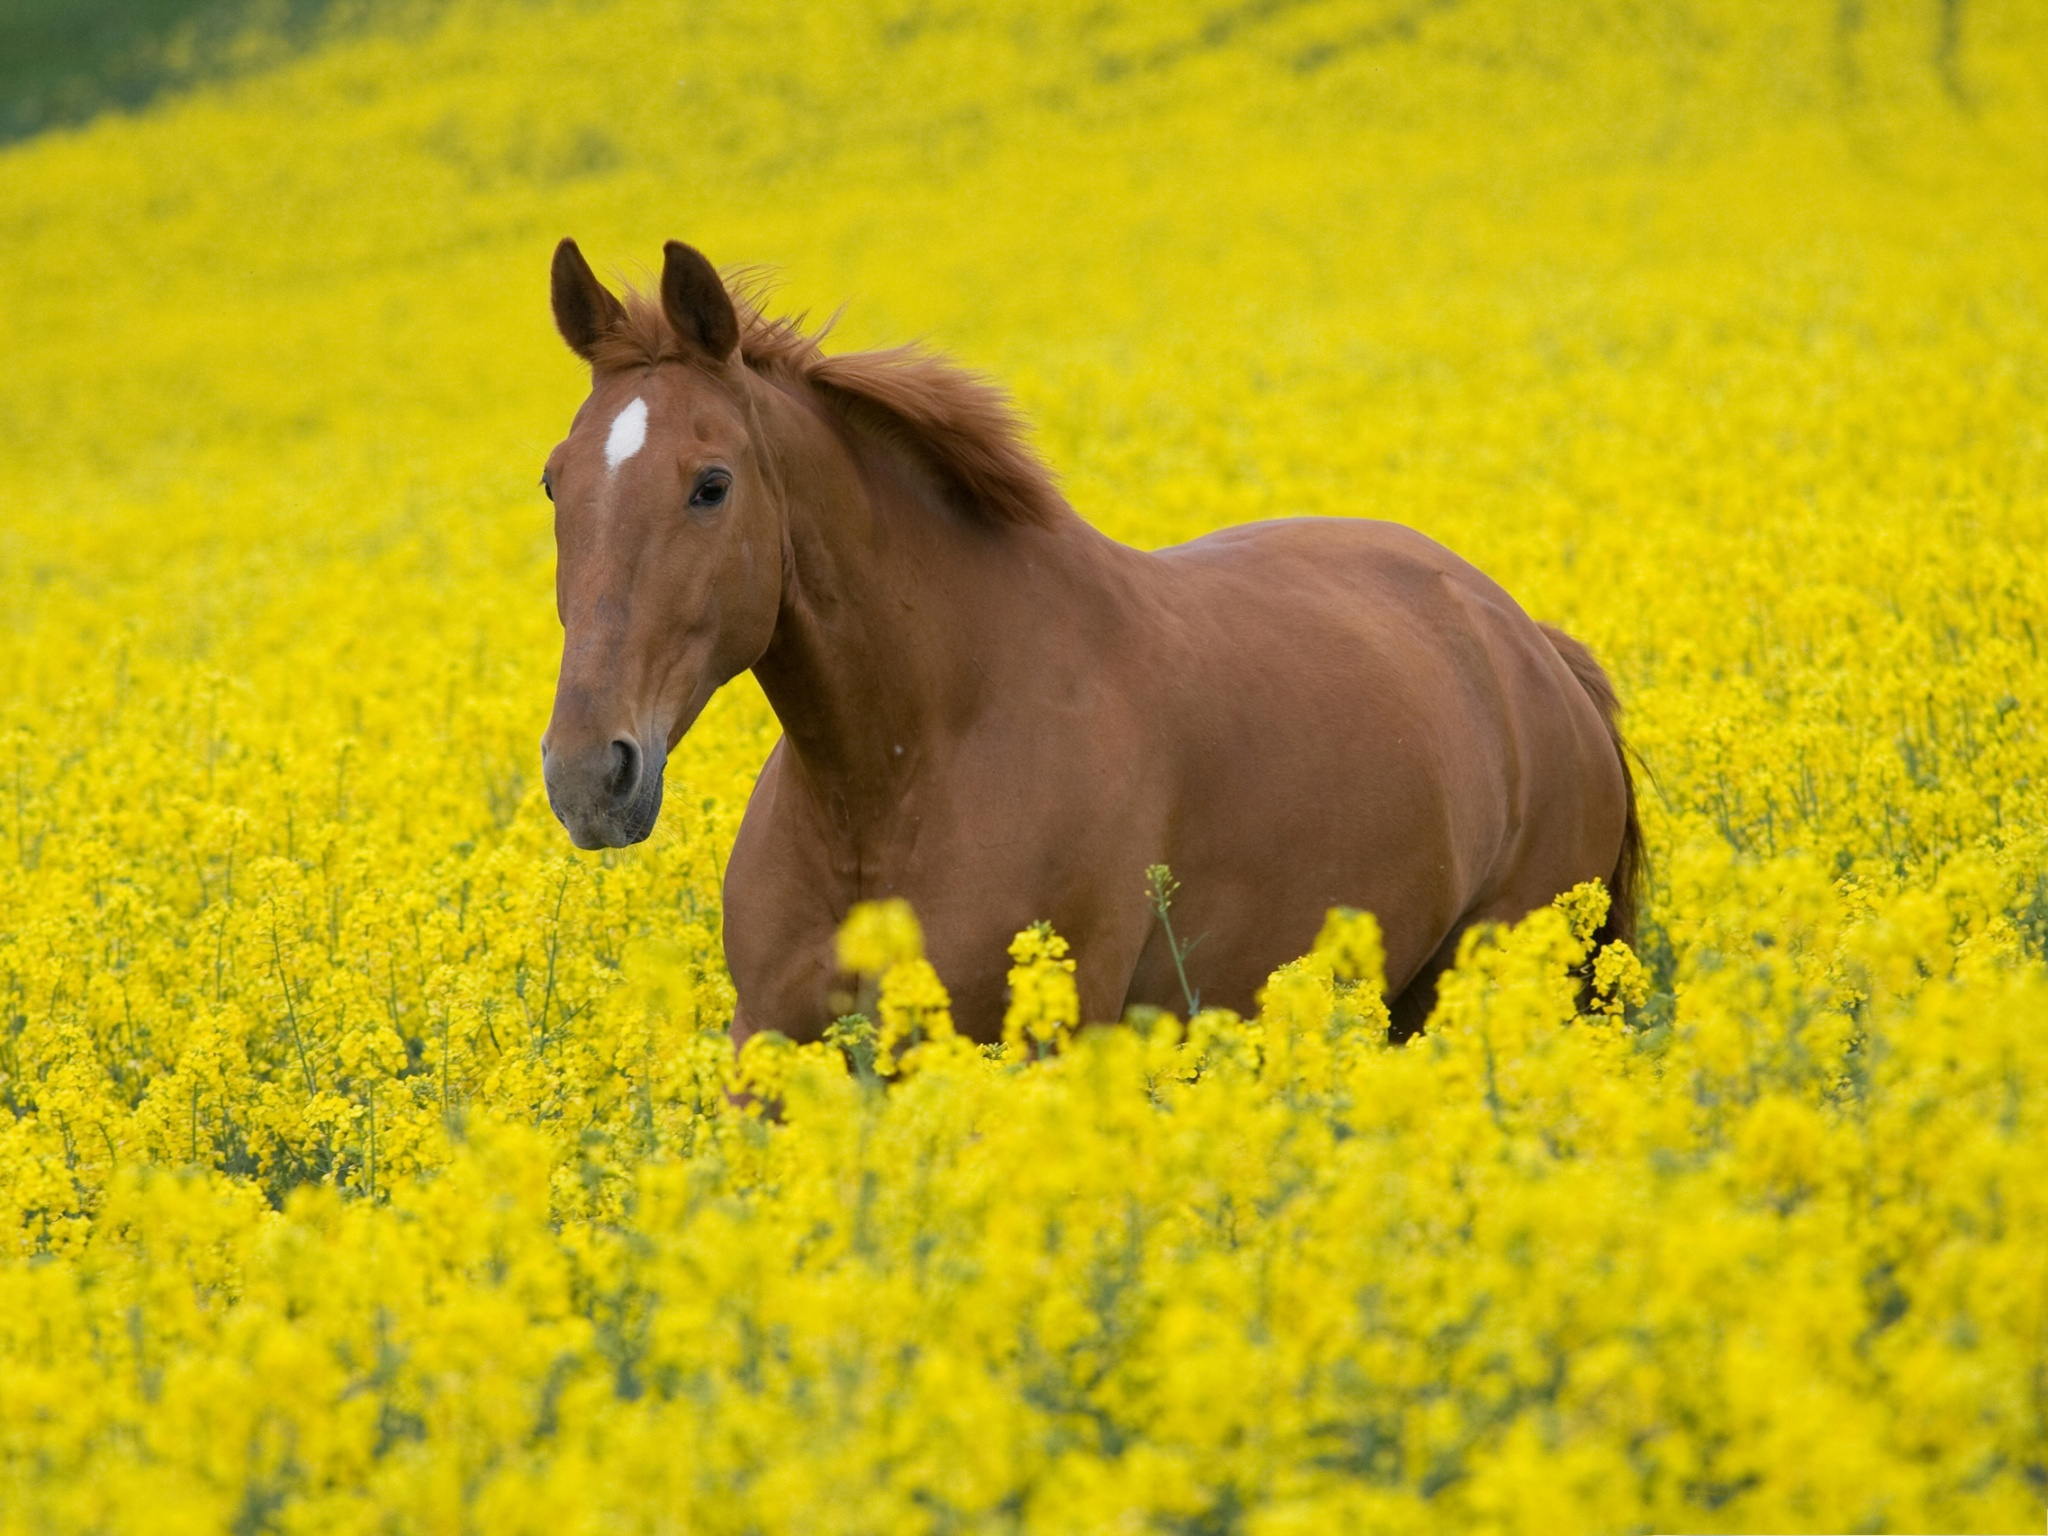 click to free download the wallpaper--Nature and Animals, Horse in Flower Field, Fun Time Outdoor  2048X1536 free wallpaper download